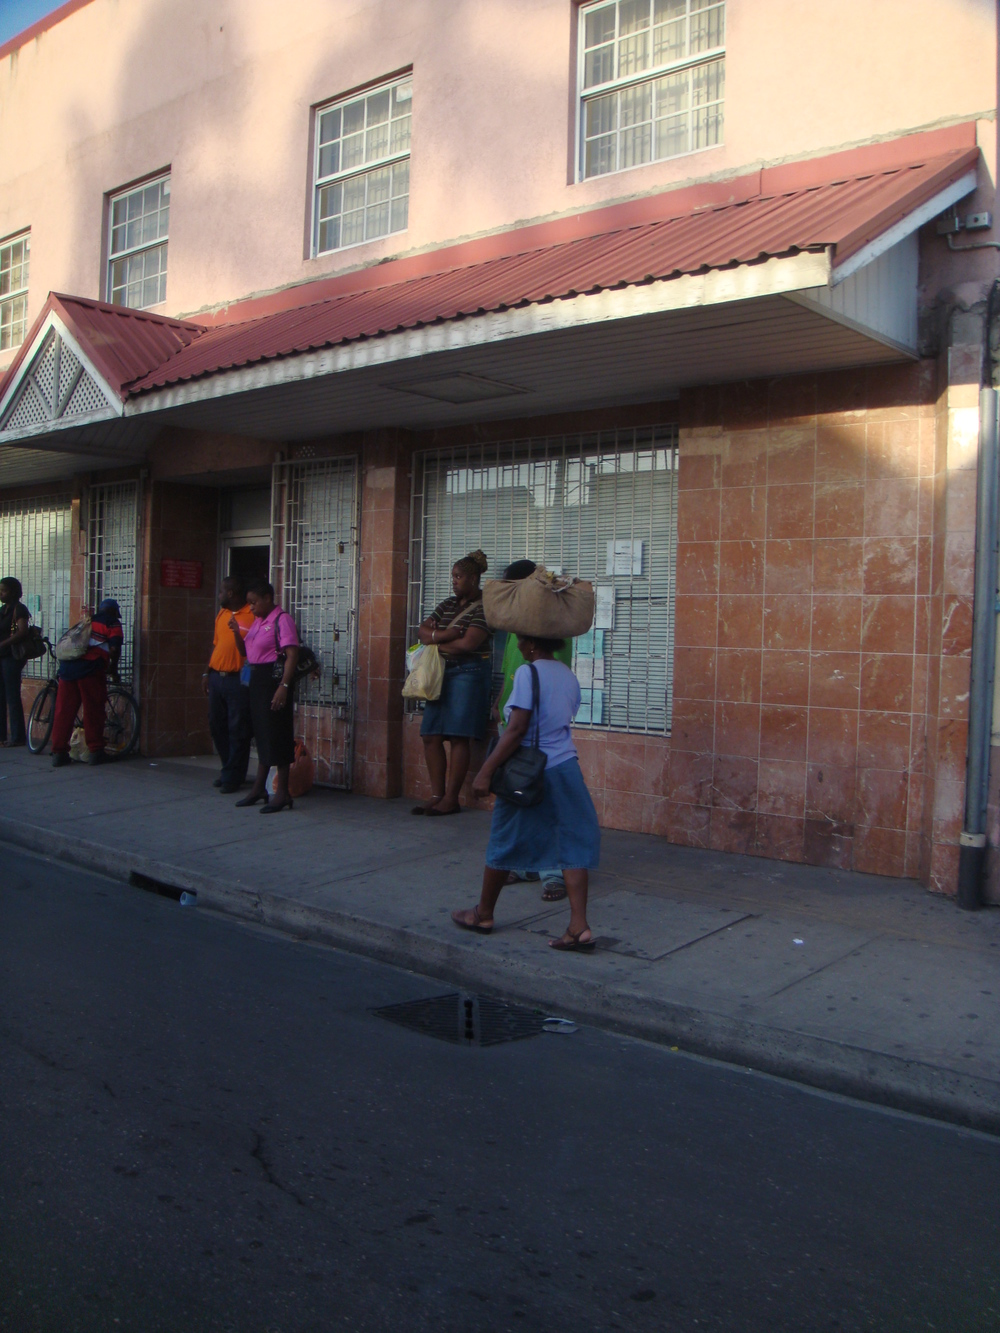 Busy street in Bridgetown